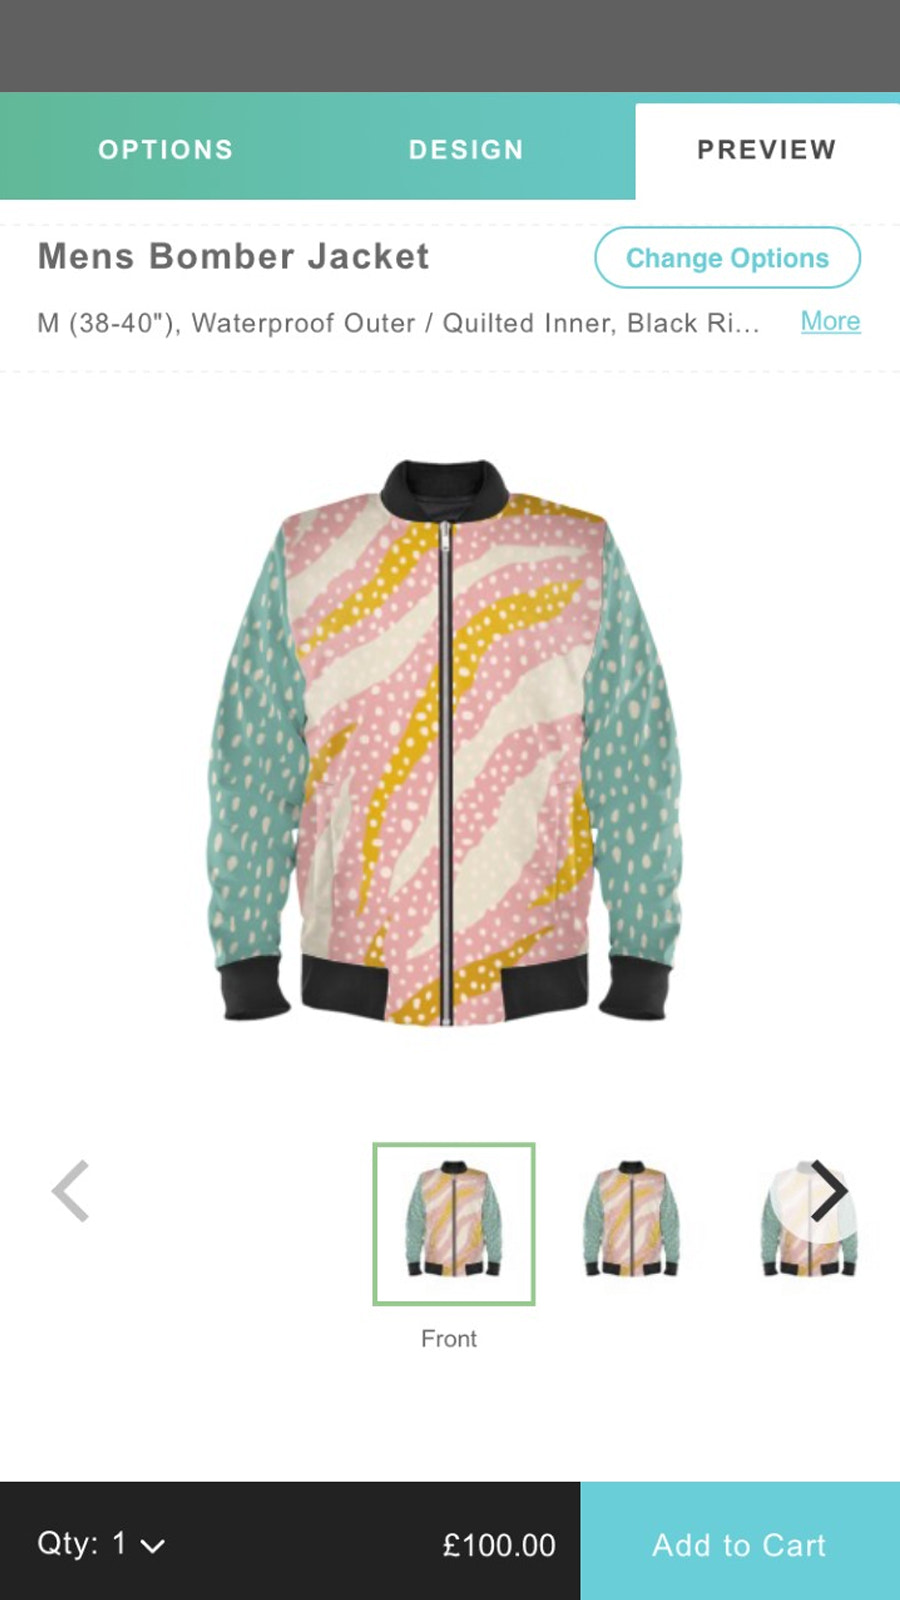 sell your own art on Bomber Jackets